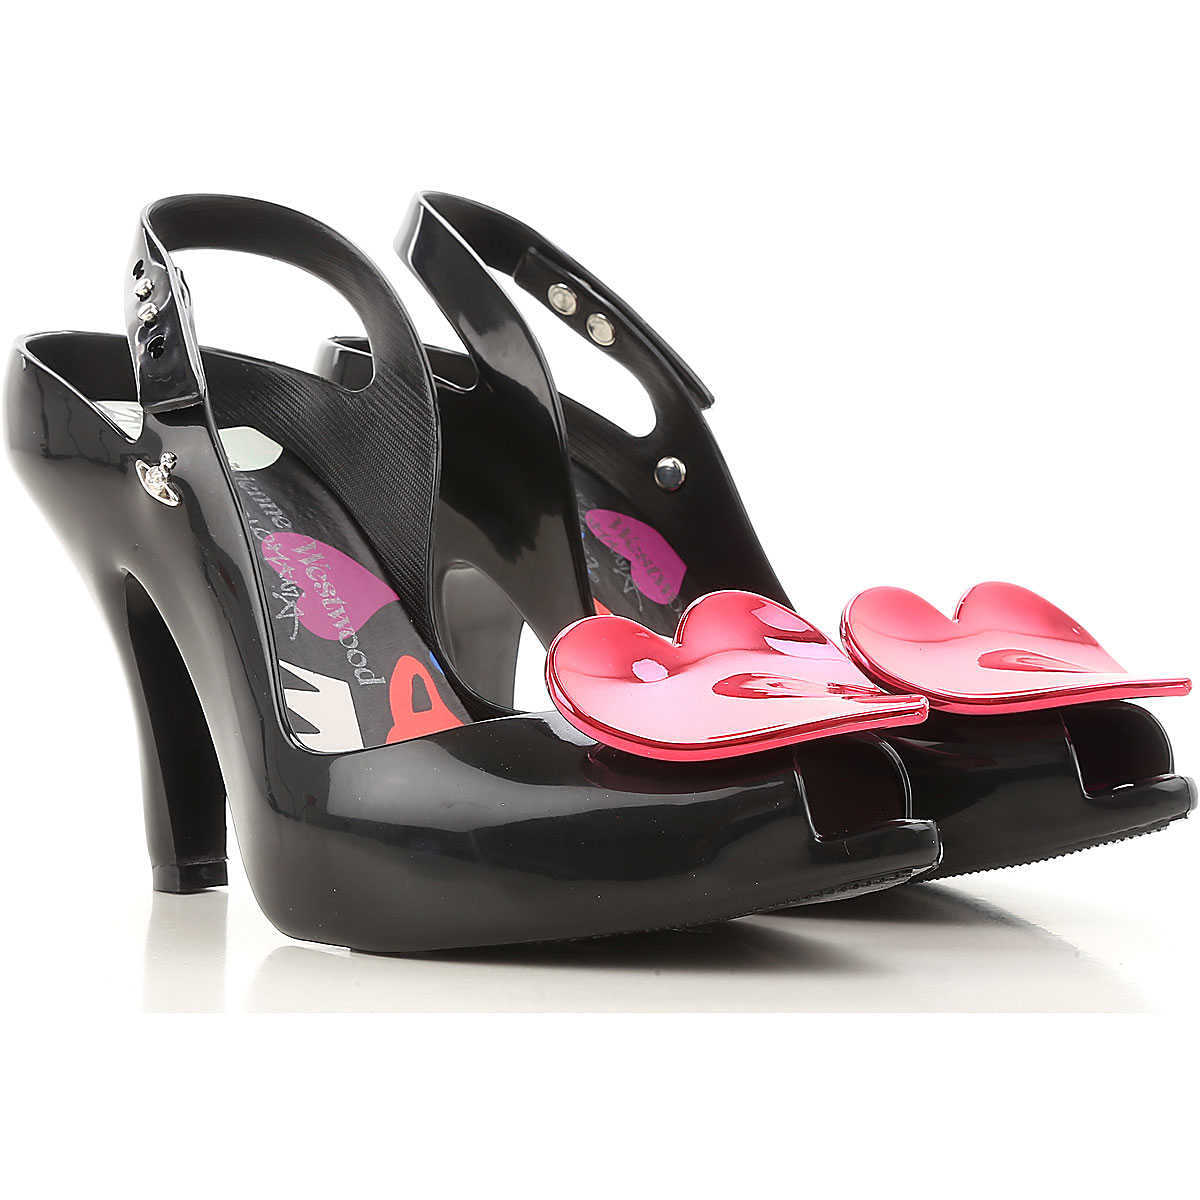 Vivienne Westwood Womens Shoes Melissa + Anglomania Canada - GOOFASH -